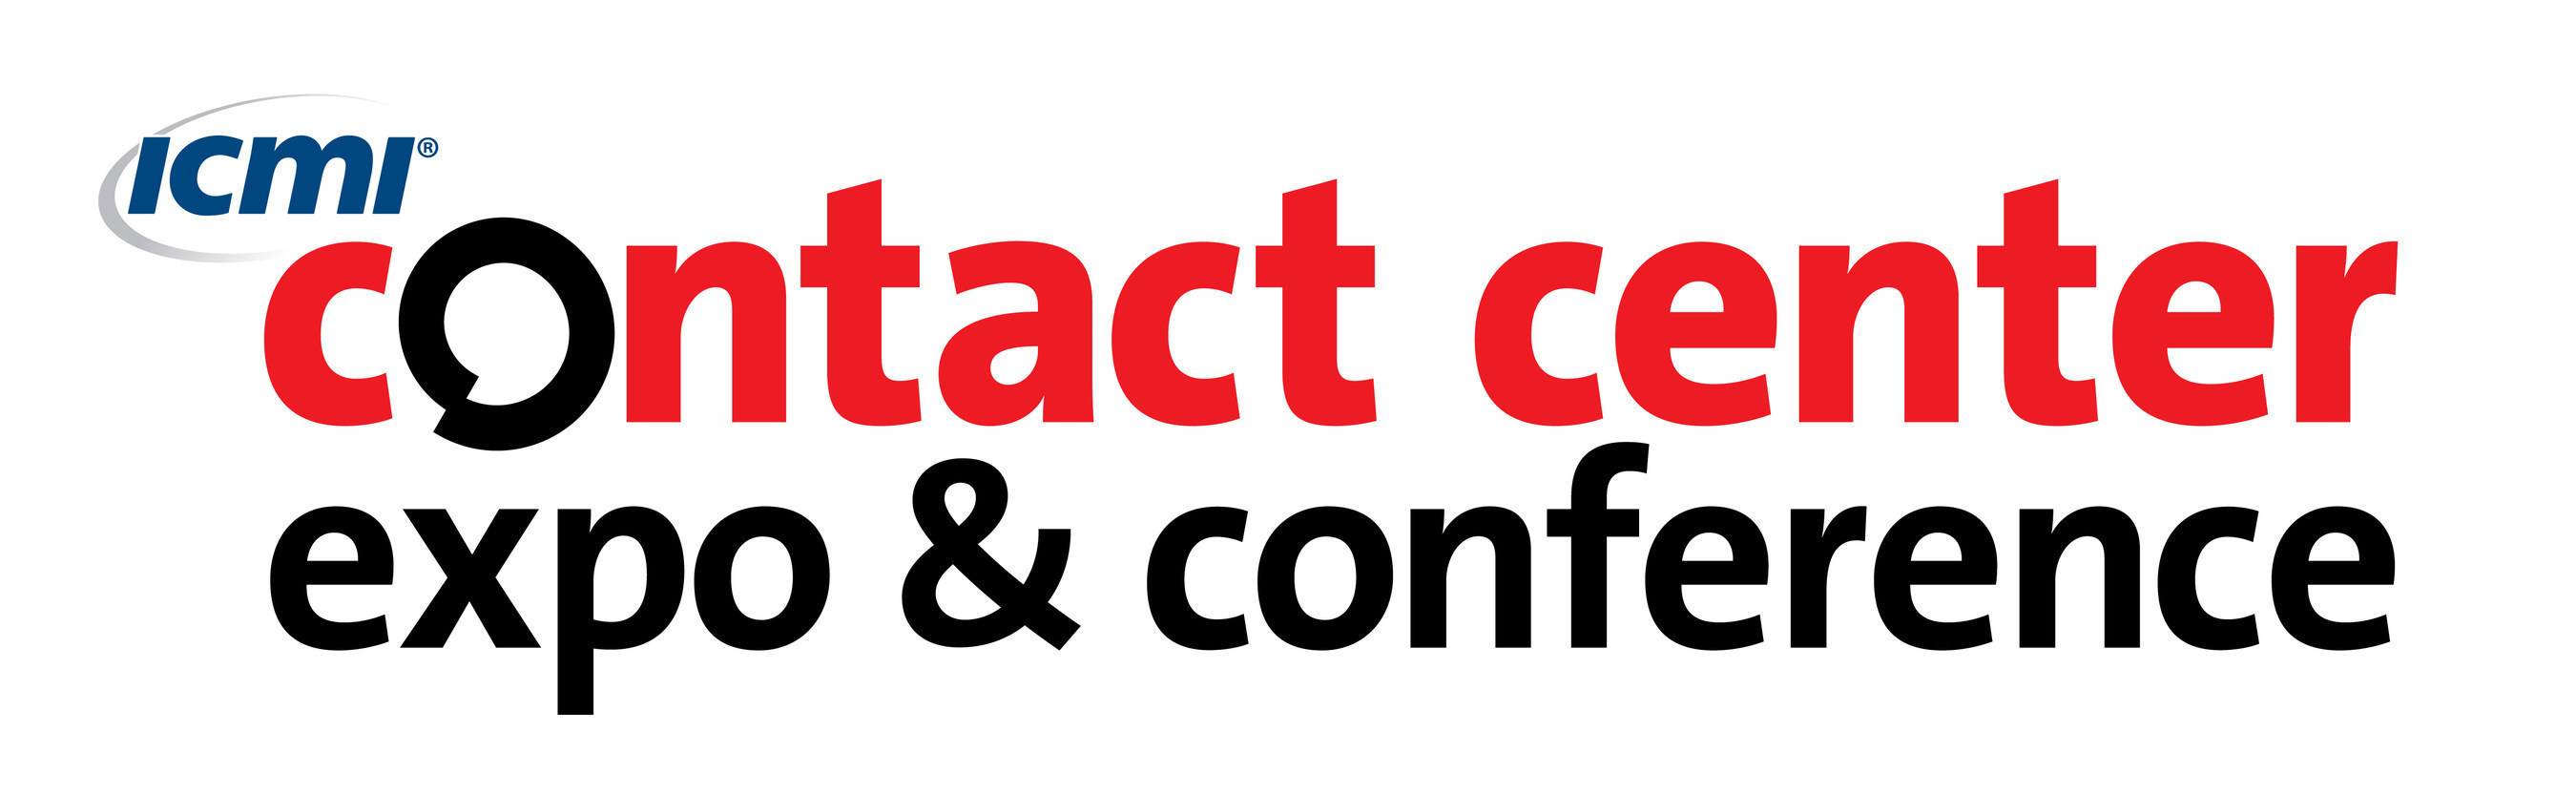 The 2015 Contact Center Expo & Conference will take place May 4-7 at the Walt Disney World Dolphin Resort in Orlando, Florida.